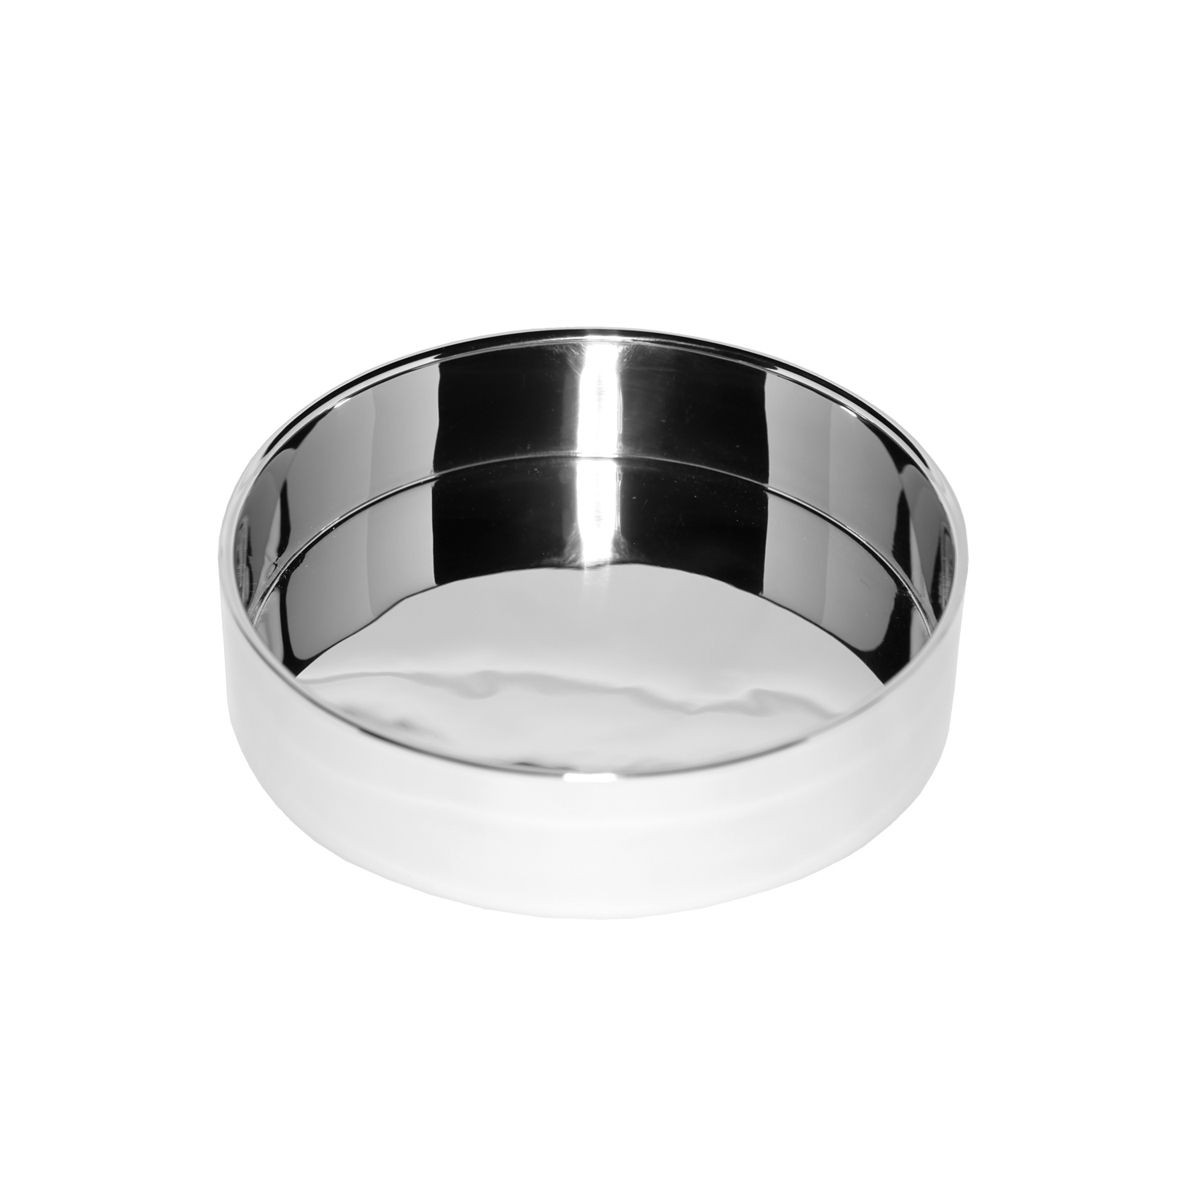 Service Ideas SM-46 Serving Bowl with Double Wall Insulation, 6.9 Qt.